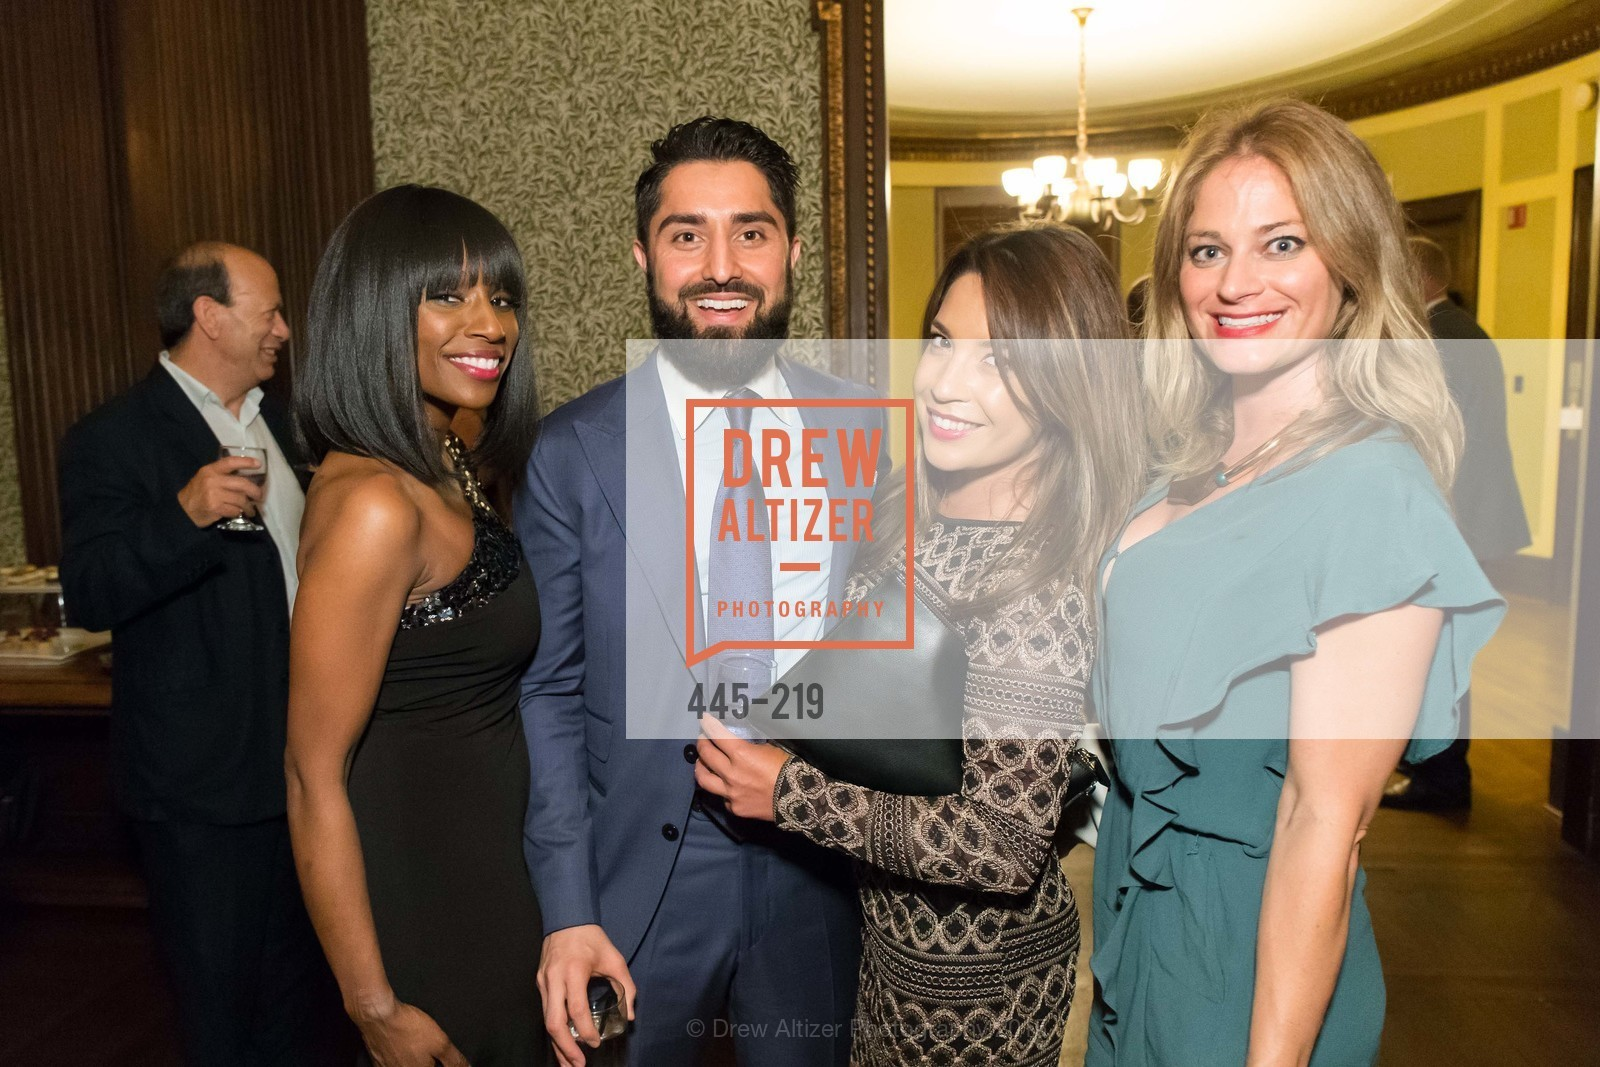 Pernella Sommerville, Roh Habibi, Michelle Balance, Champagne Reception & Screening of Million Dollar Listing San Francisco, University Club. 800 Powell St, August 5th, 2015,Drew Altizer, Drew Altizer Photography, full-service agency, private events, San Francisco photographer, photographer california